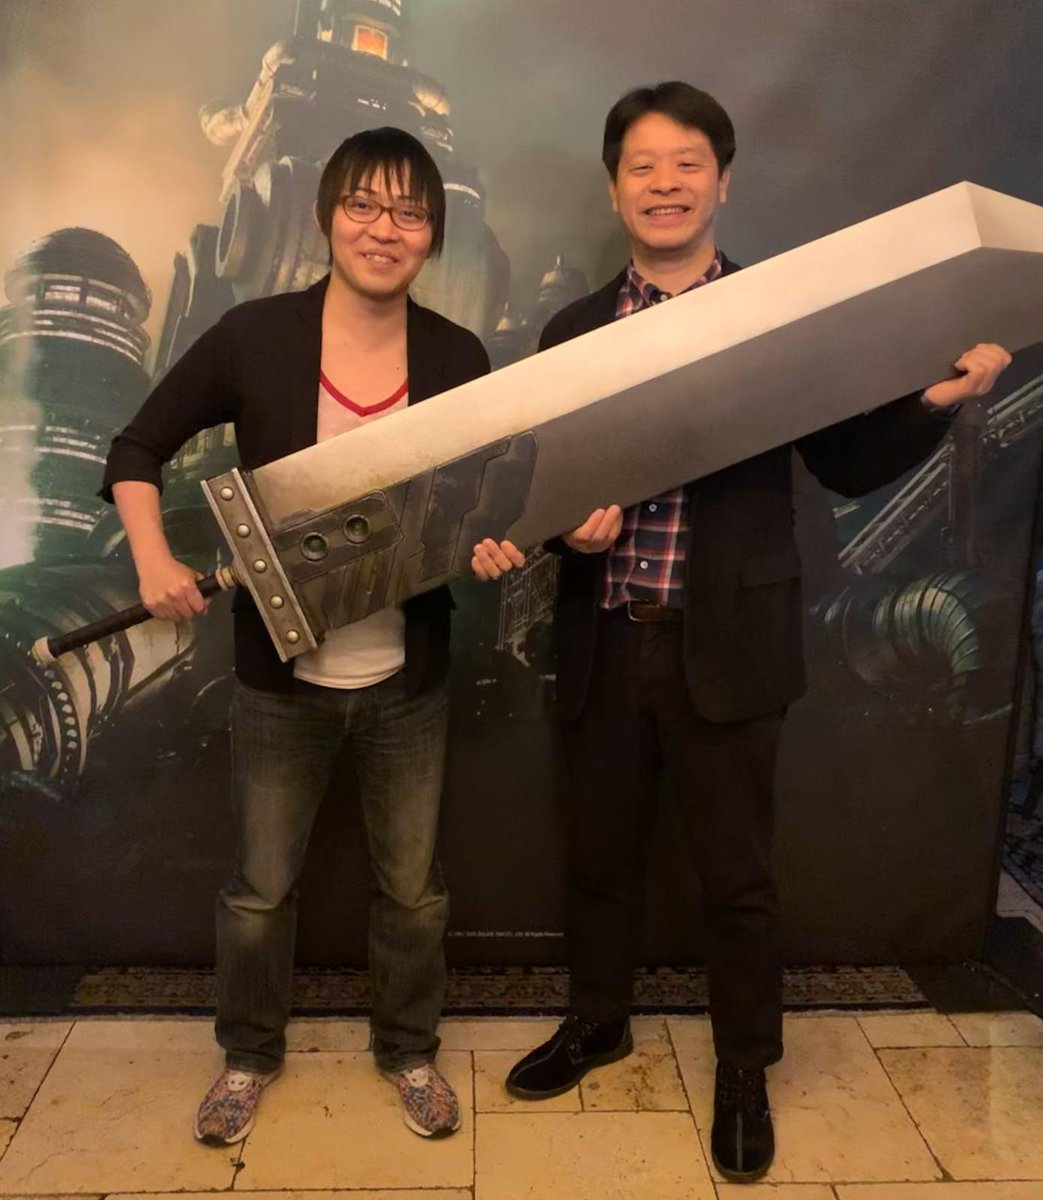 #FinalFantasy VII Remake co-director Naoki Hamaguchi (left) and producer Yoshinori Kitase (right) have been in both Spain and Italy this week.We hope you'll wish them all the best on their travels to England, Germany and France over the coming days! #FF7R